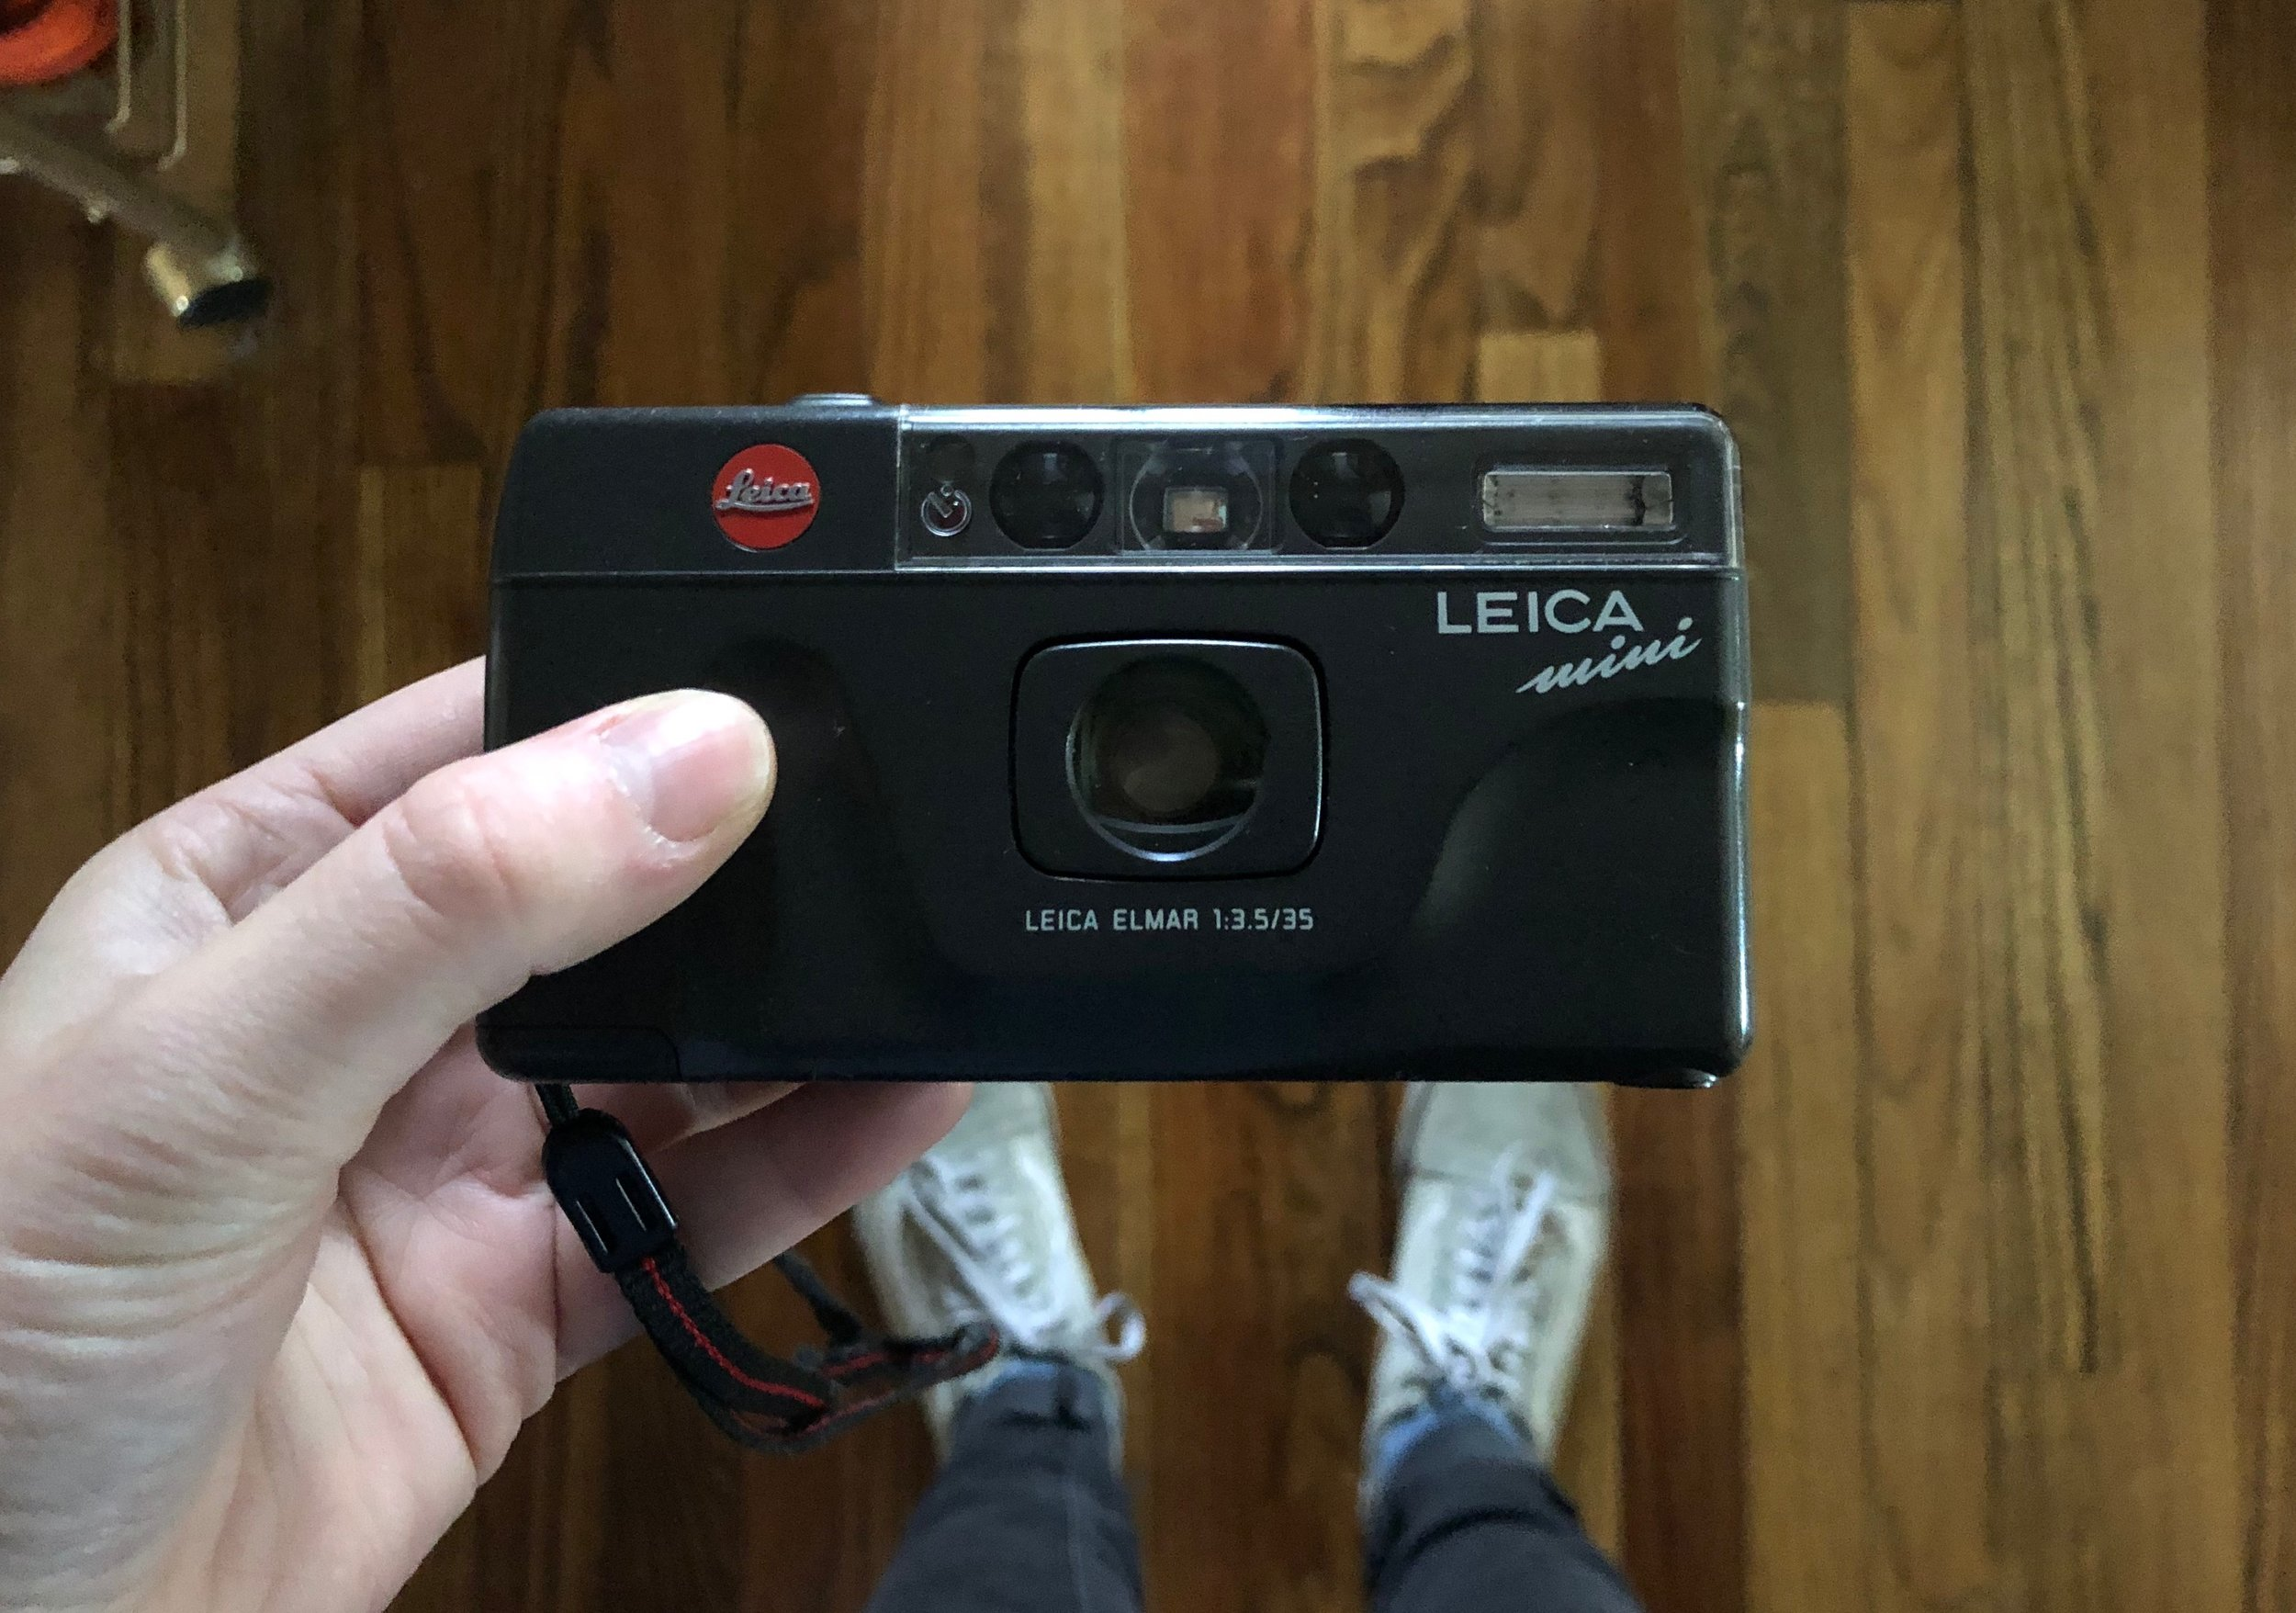 SHOT ON: leica mini, my christmas present. with kodak portra 400.